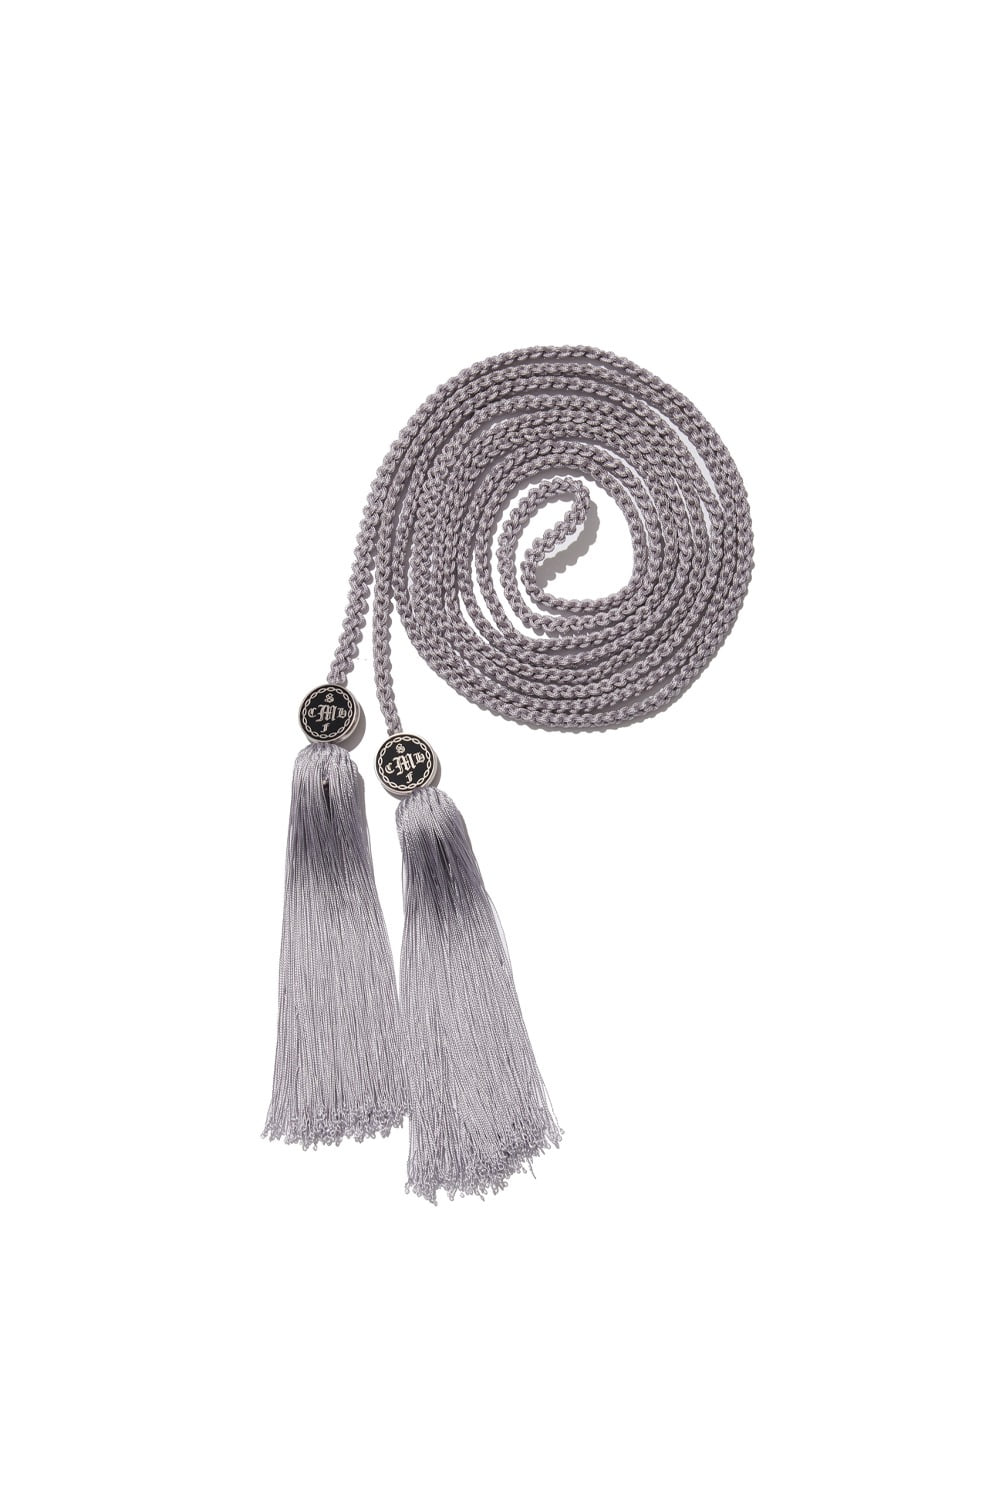 PROJECT MAGO_TASSEL STRAP_GREY